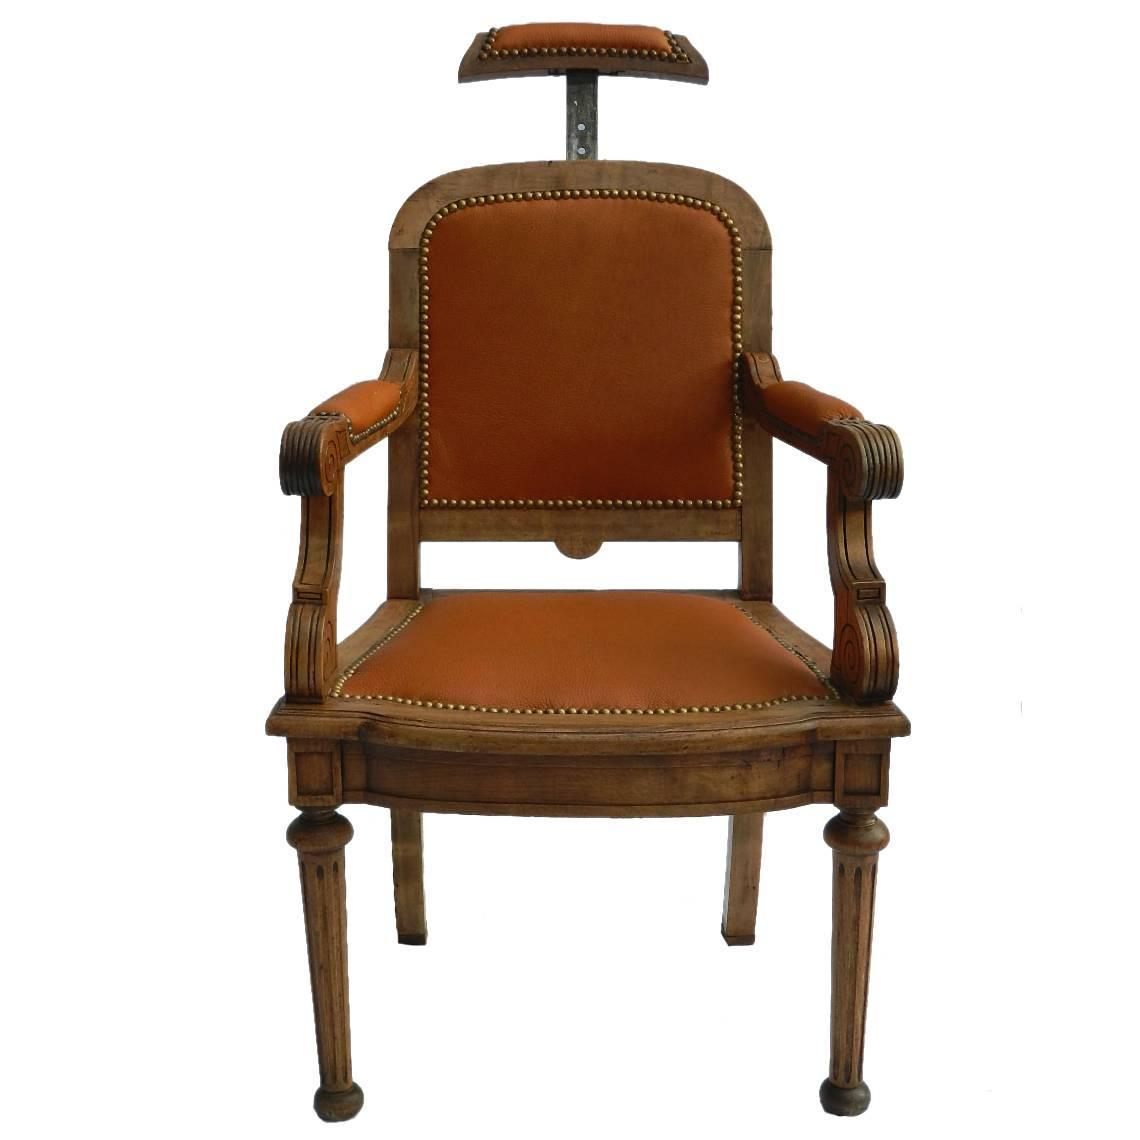 19th Century French Barbers Chair Leather Desk Reclining Armchair At 1stdibs